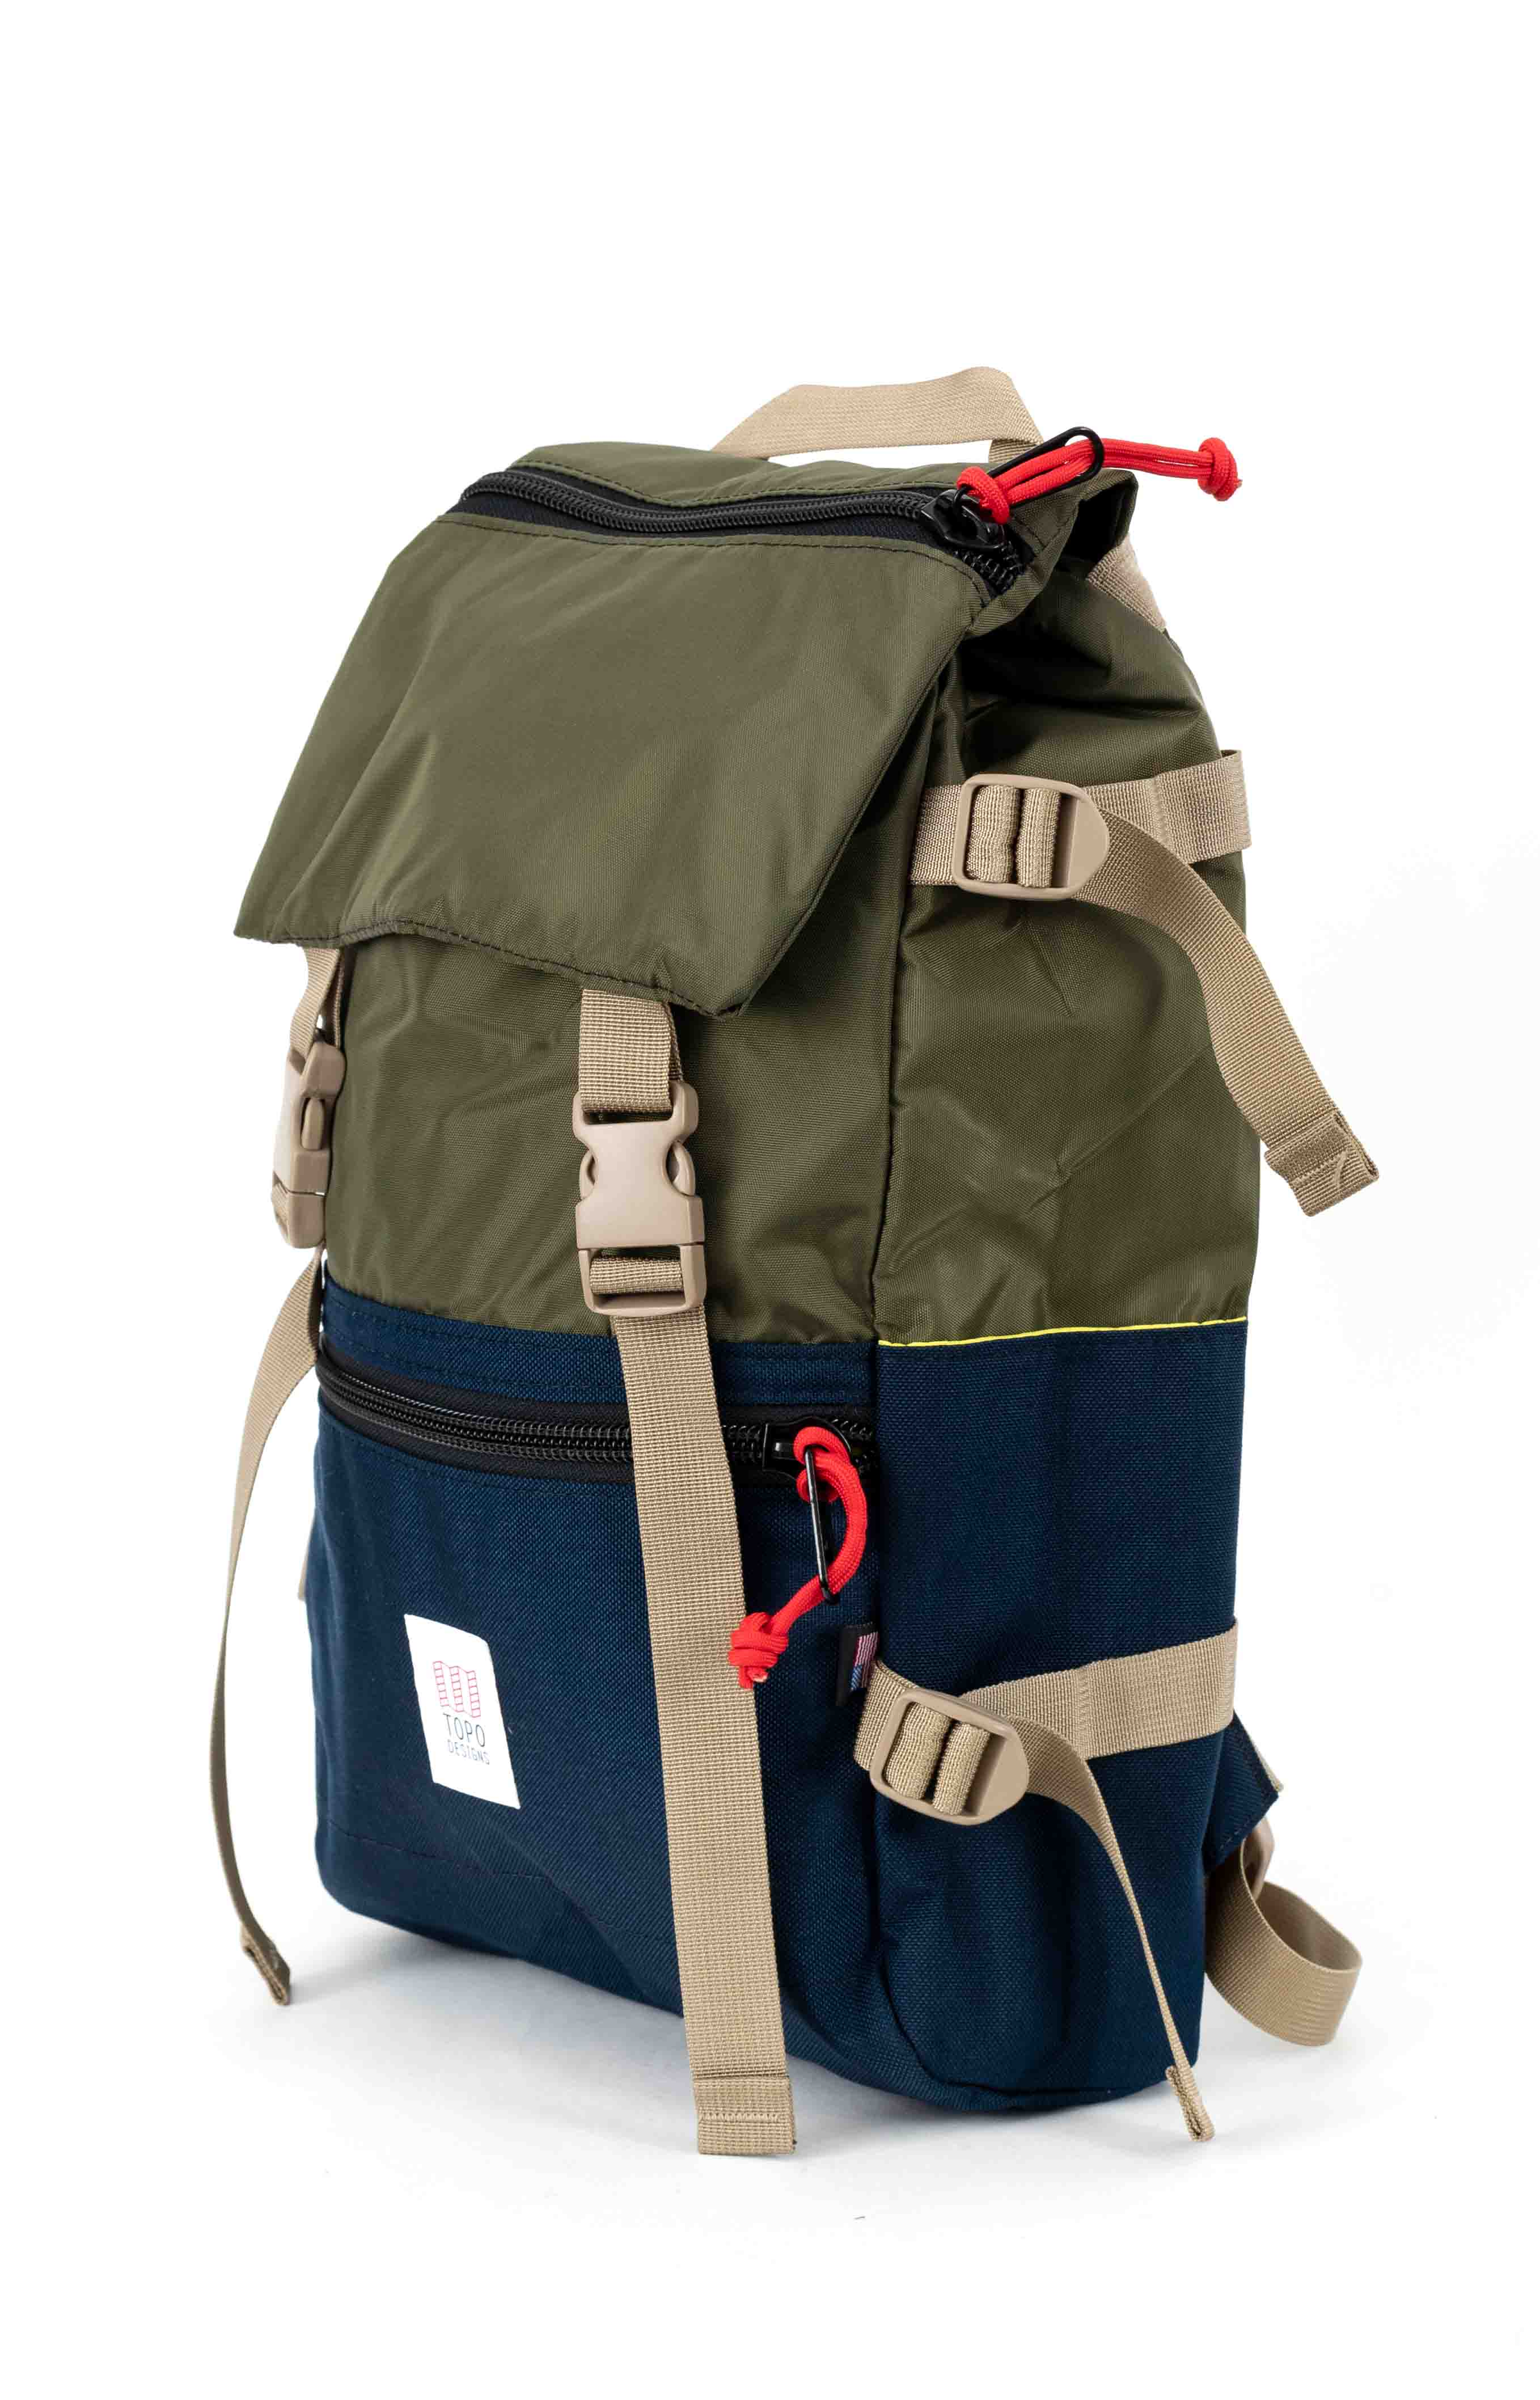 Rover Pack - Olive/Navy 2